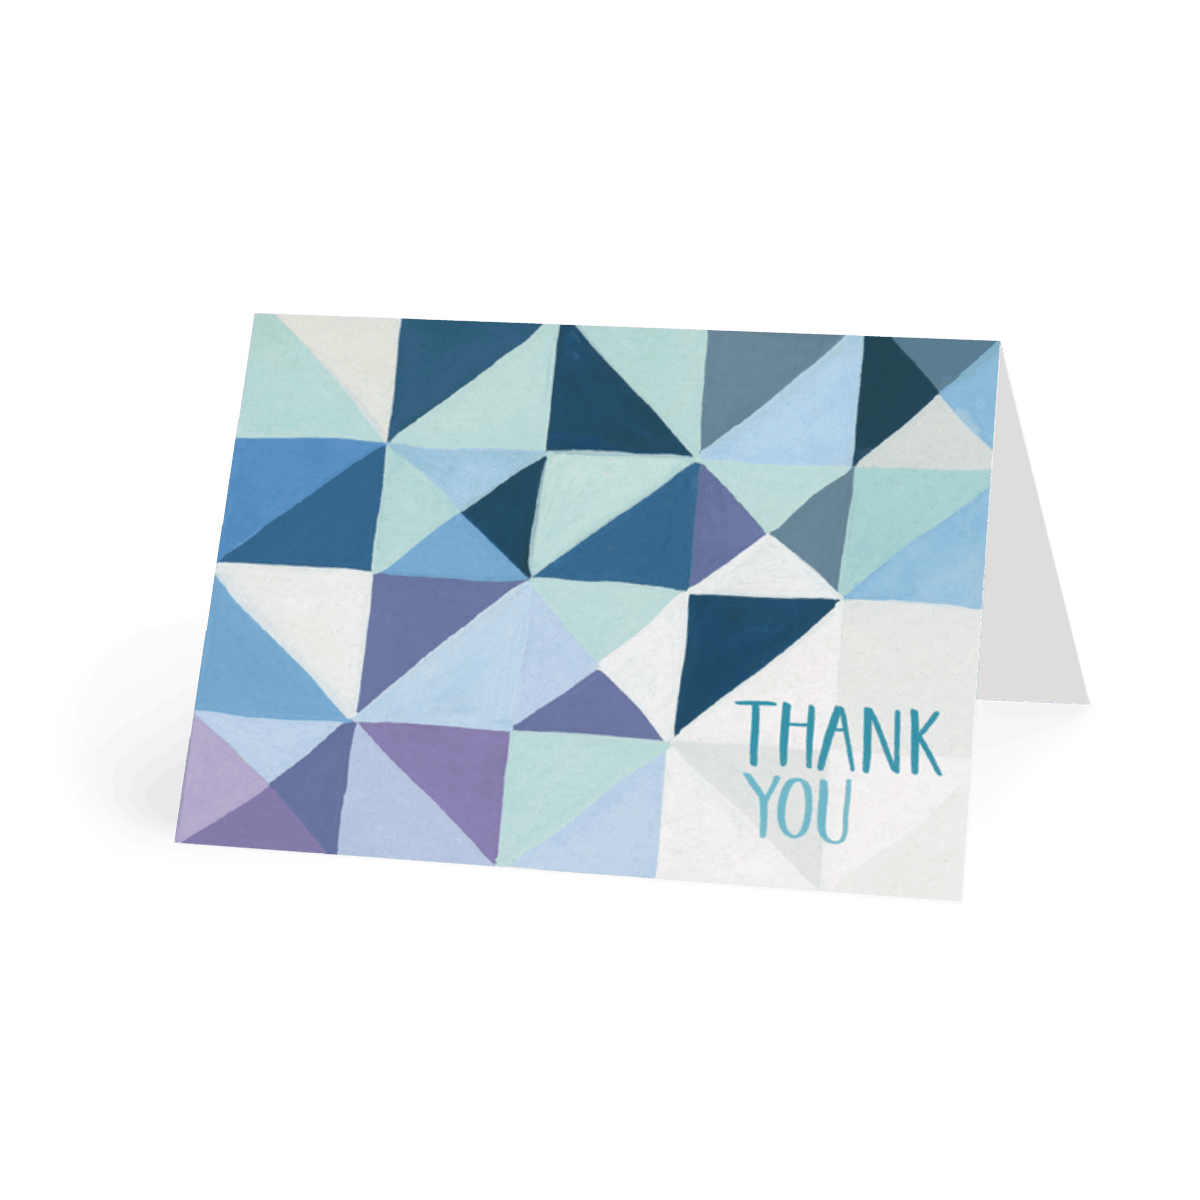 Https%3a%2f%2fwww.papier.com%2fproduct image%2f1454%2f14%2fblue geometric 403 front 1453909897.png?ixlib=rb 1.1